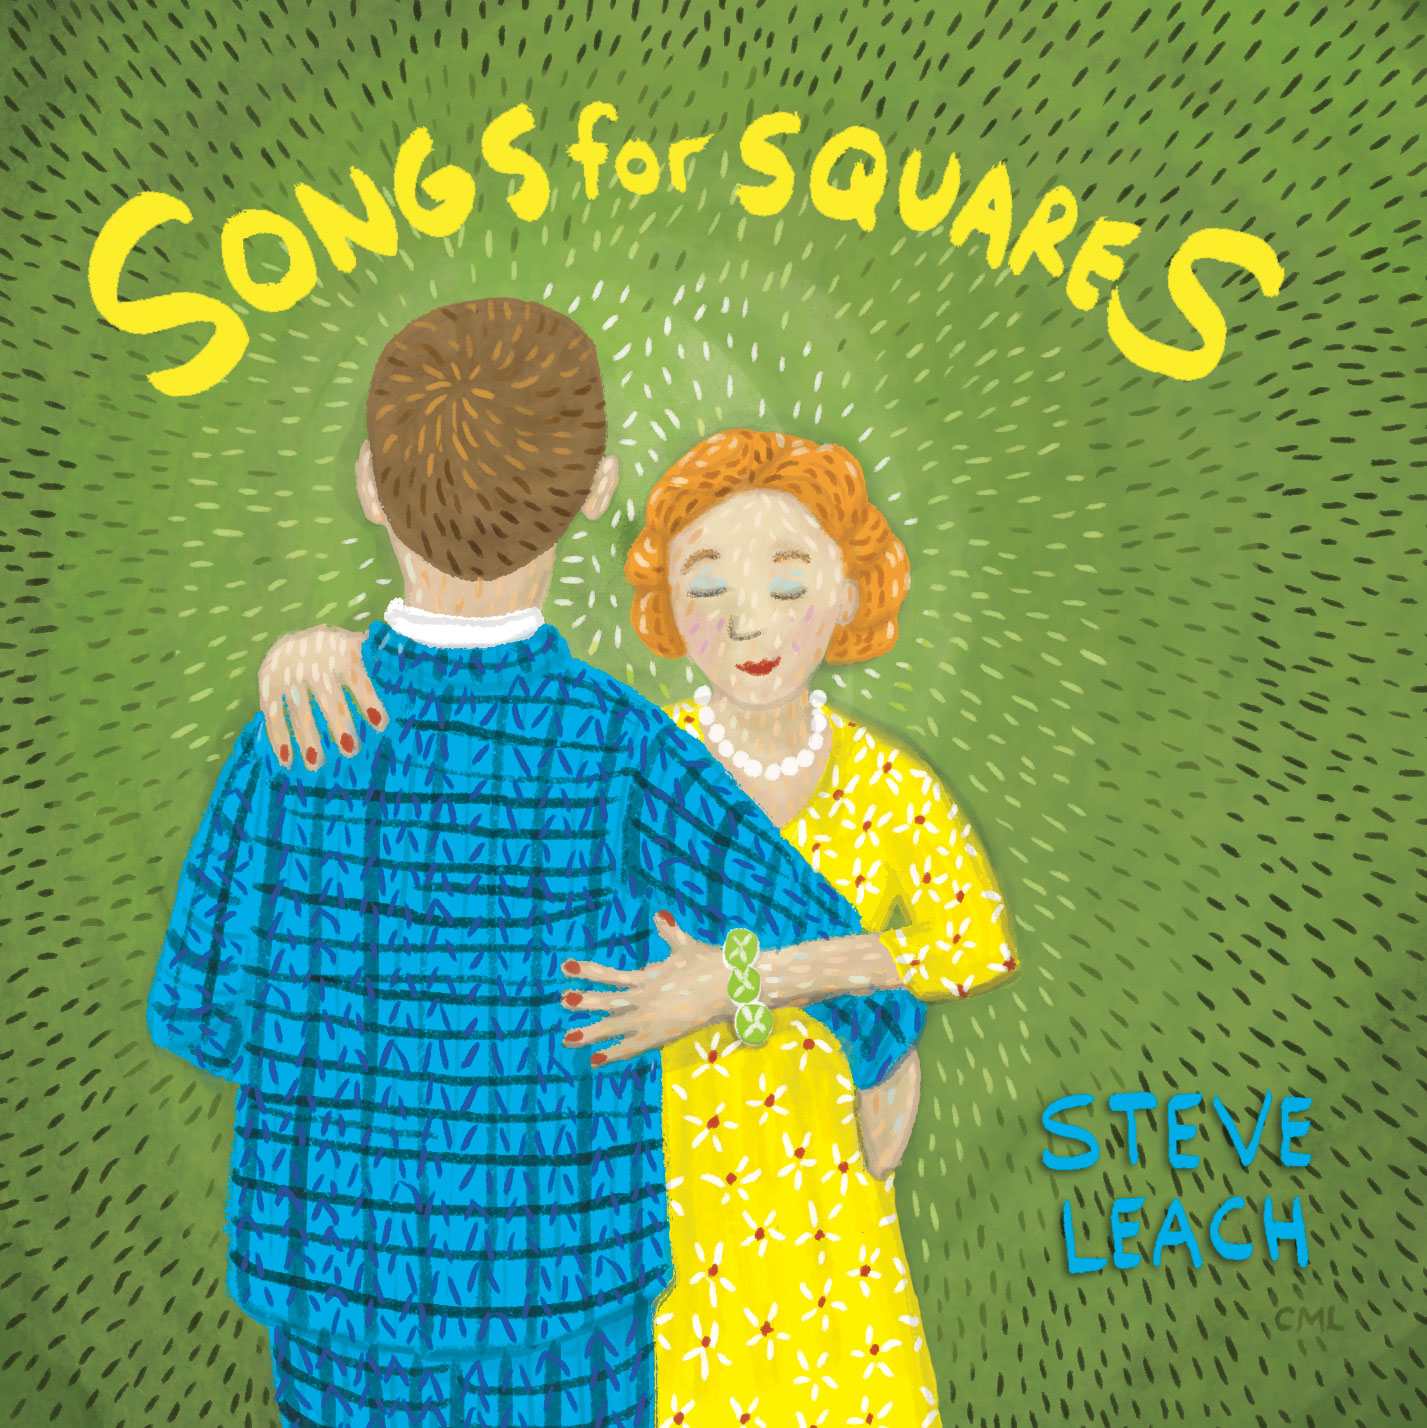 Christine Marie Larsen Illustration: CD Cover Illustration of a couple dancing. Songs for Squares, Steve Leach